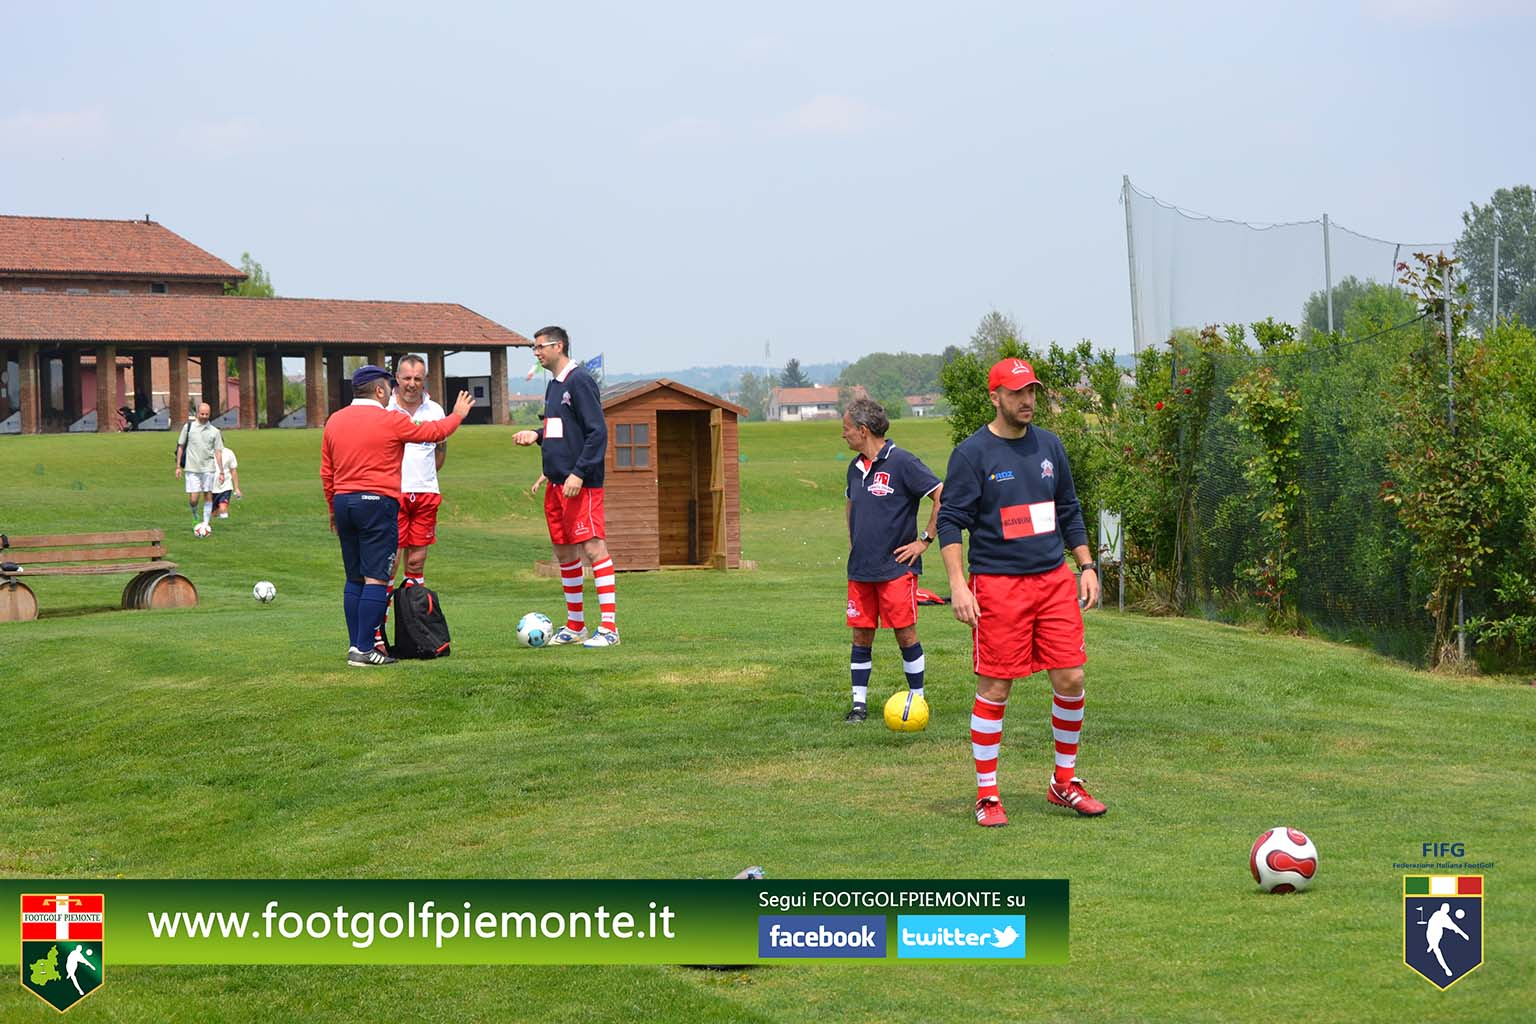 FOTO 9 Regions' Cup Footgolf Piemonte 2016 Golf Città di Asti (At) 30apr16-13